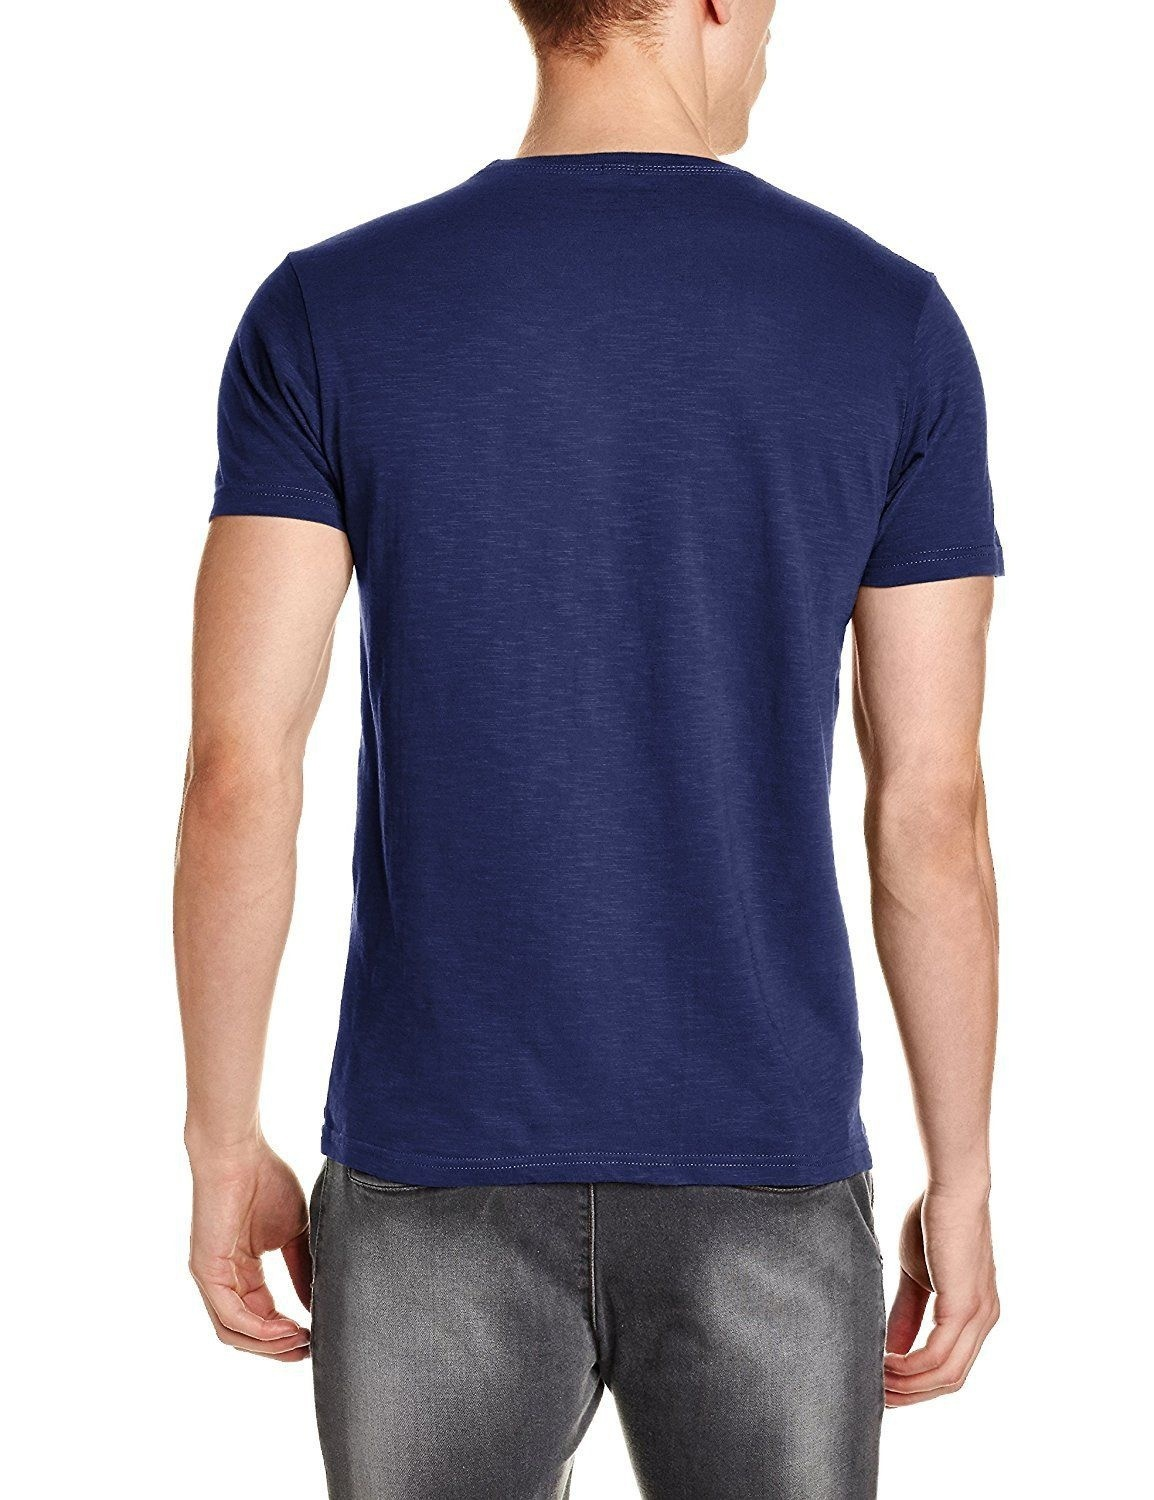 Nwt Jeans Men's Navy Pepe Printed Slim Fit Round Neck Cotton T-shirt Men Cotton